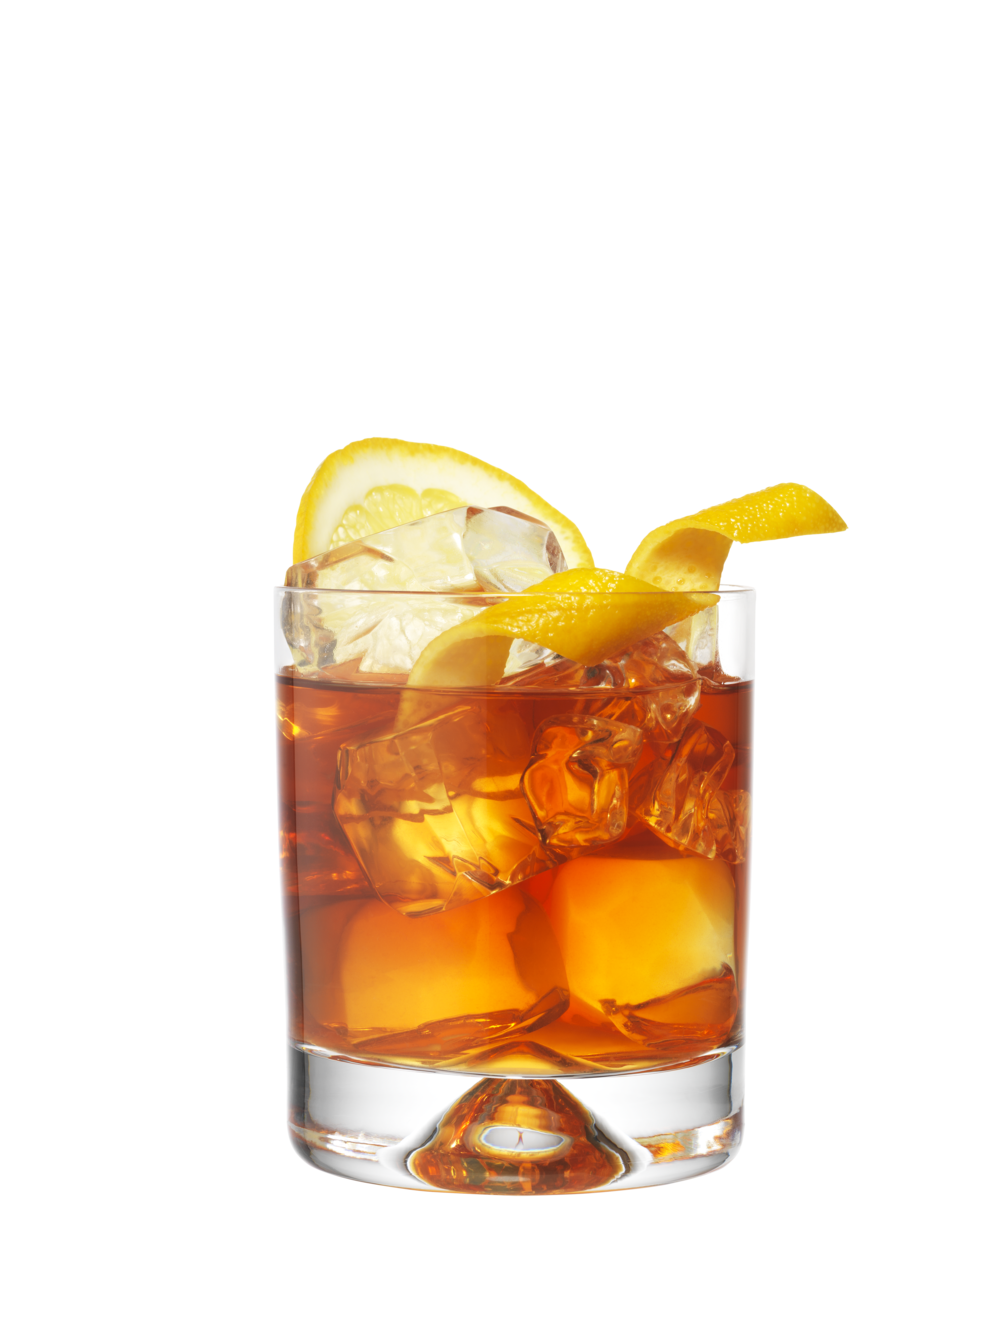 Dark Woods Negroni - 25ml Beware of the Woods Gin15ml Campari35ml Sweet Rooibos Tea1 Orange Wedge or Zest